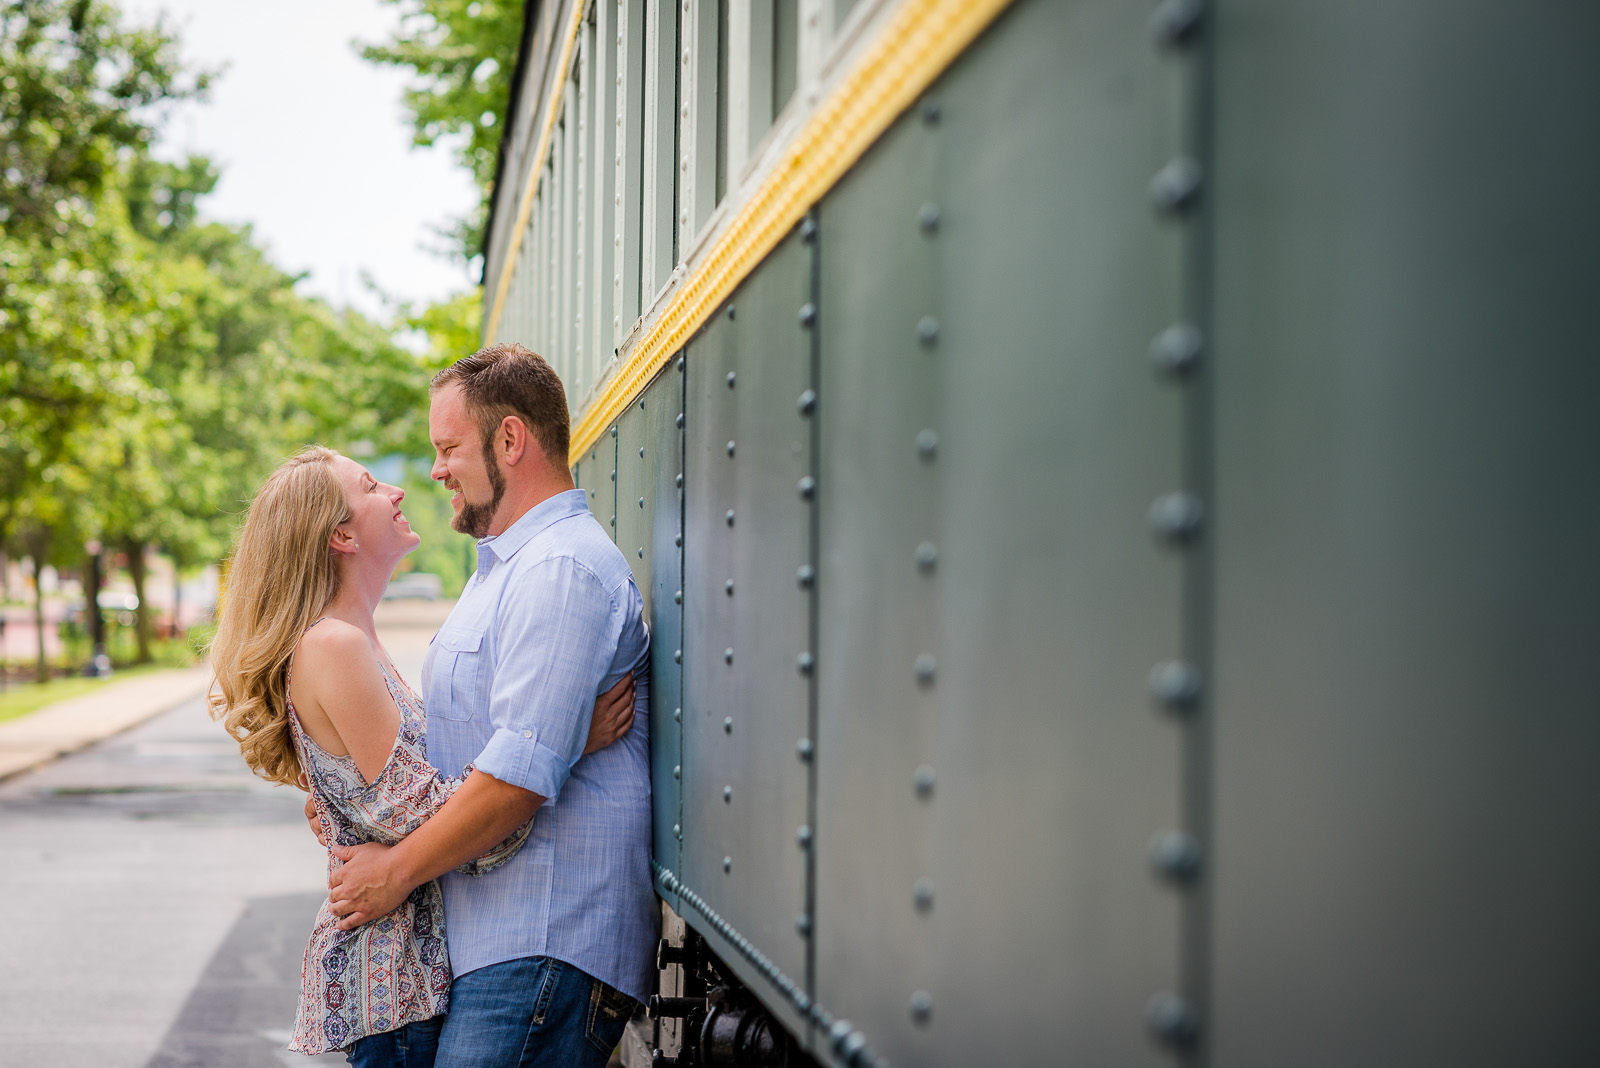 Eric_and_Christy_Photography_Blog_Kelly_Matt_Engagement-5